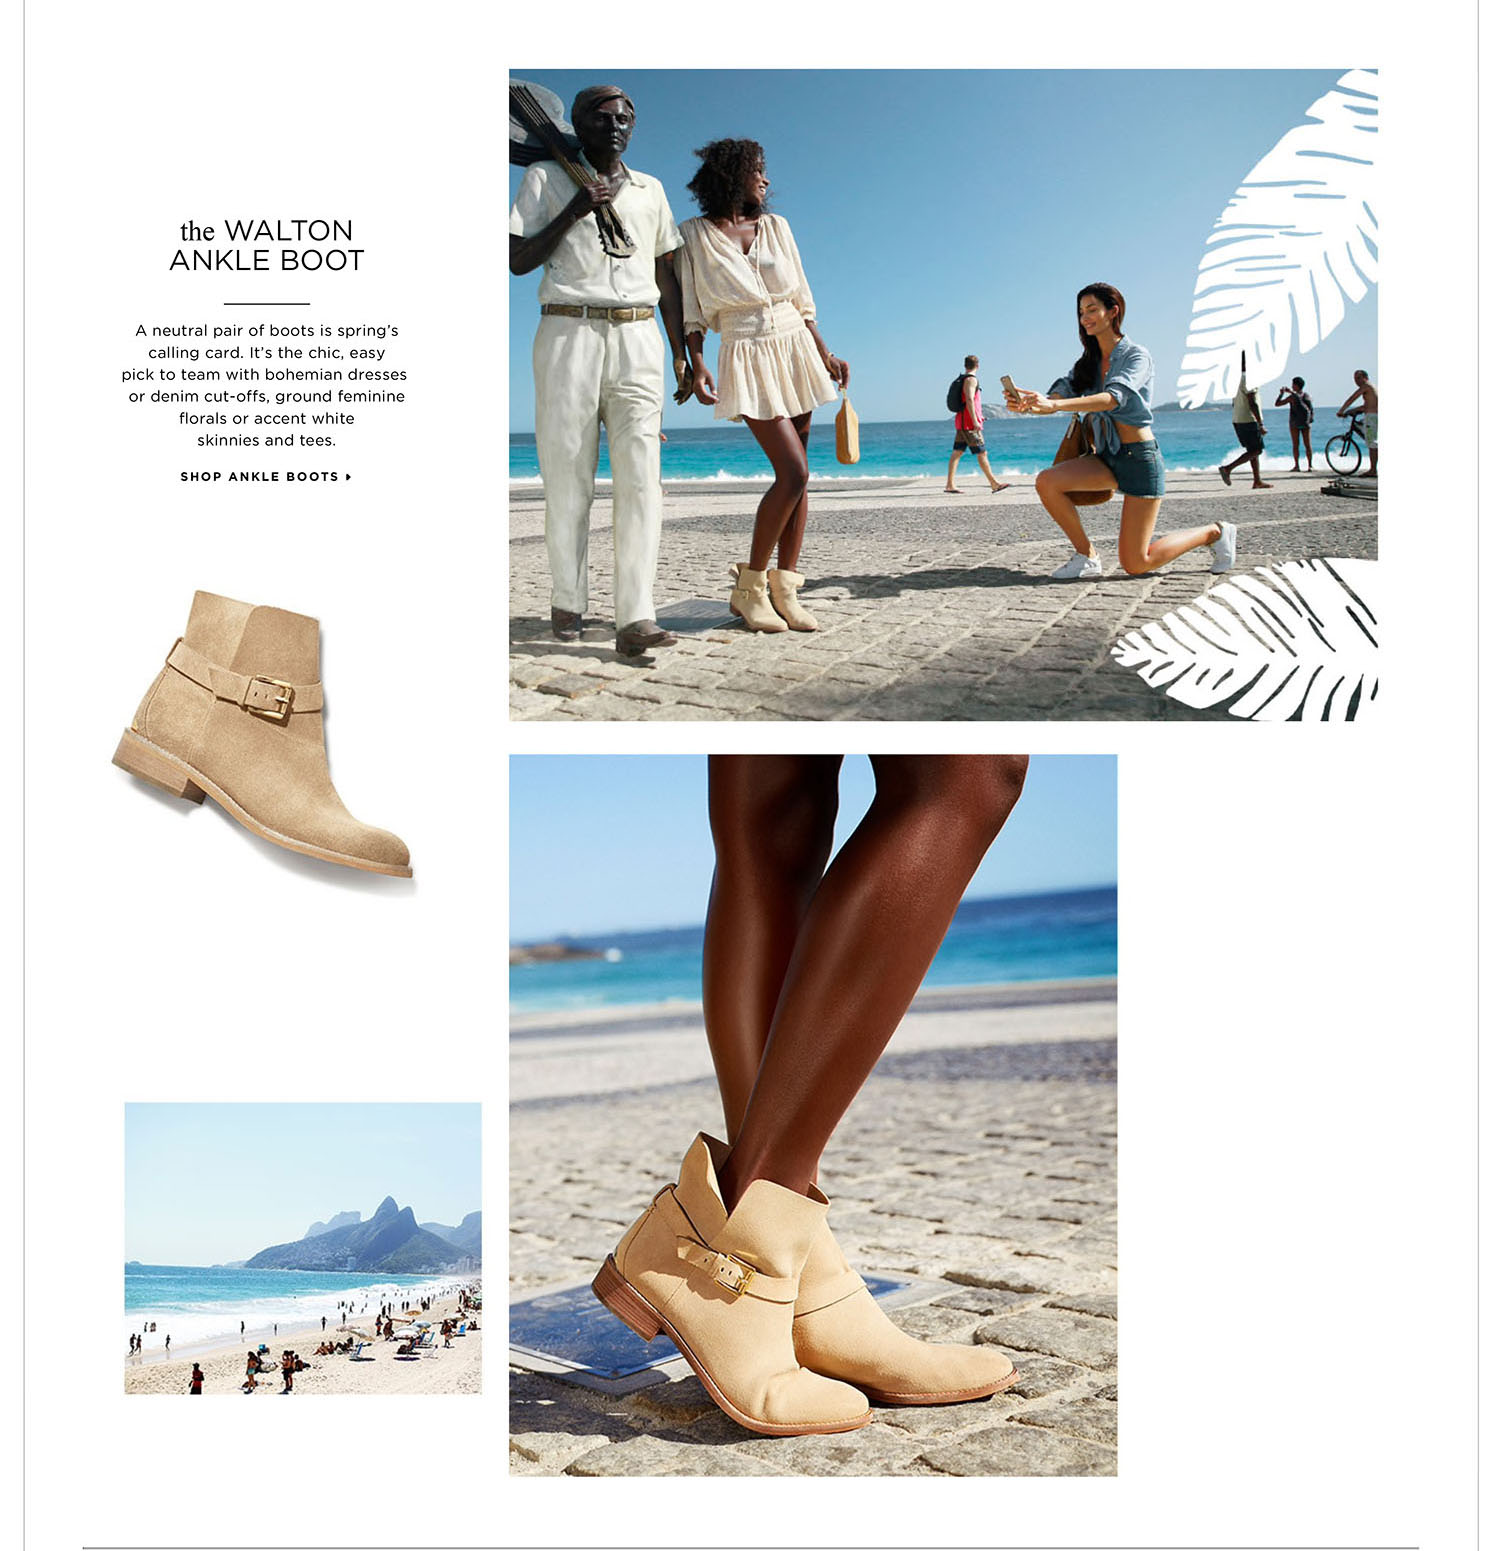 Michael Kors Jet Set 6 | Destination Kors _WEB EXECUTION_sm_p4